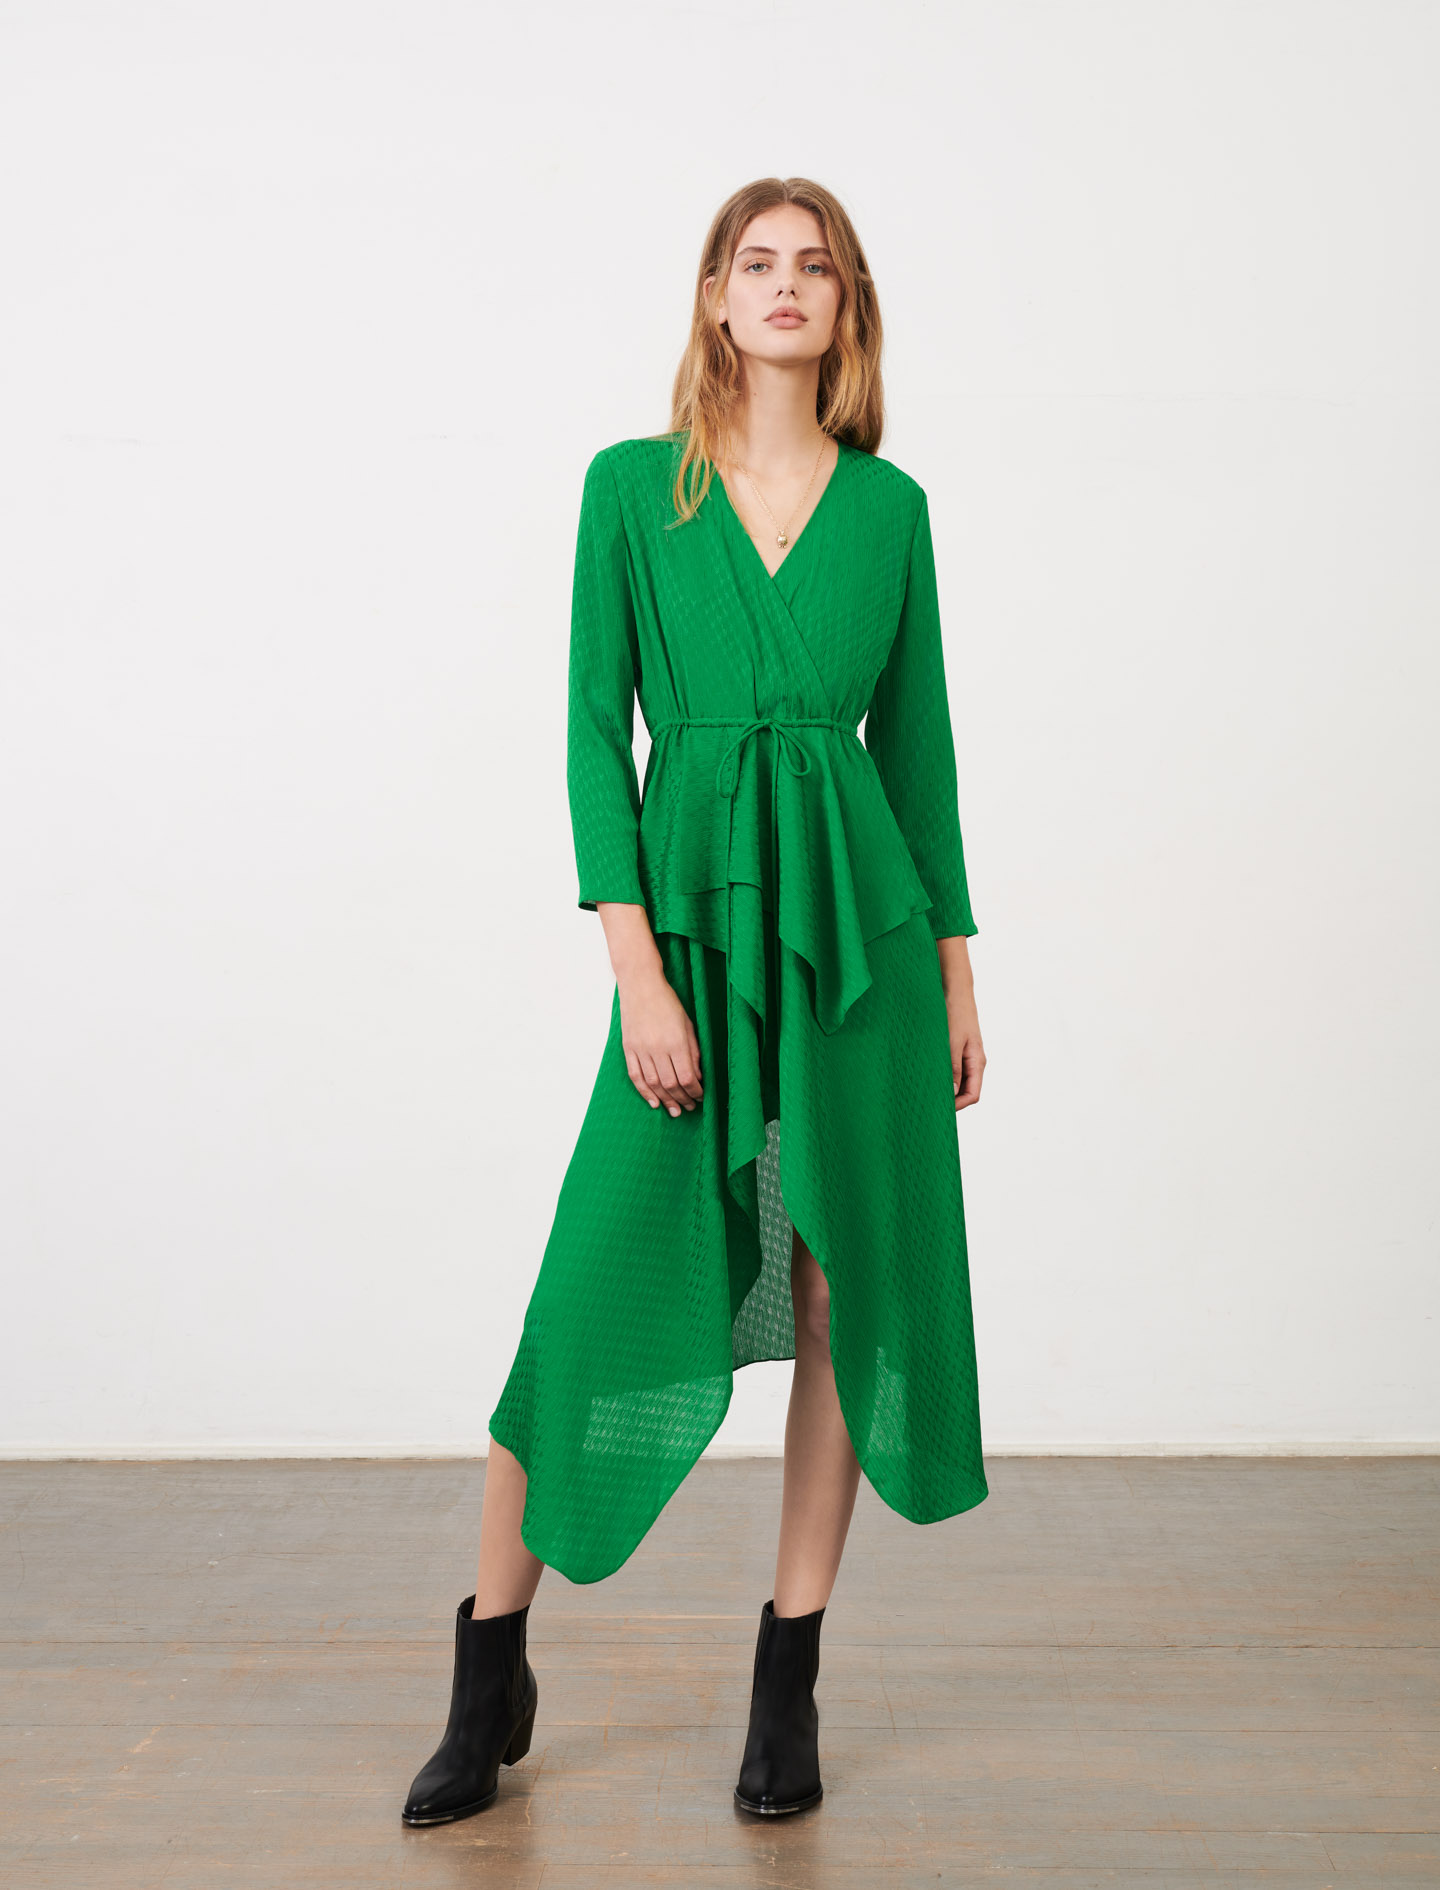 Maje Green Midi Dress Long Sleeves